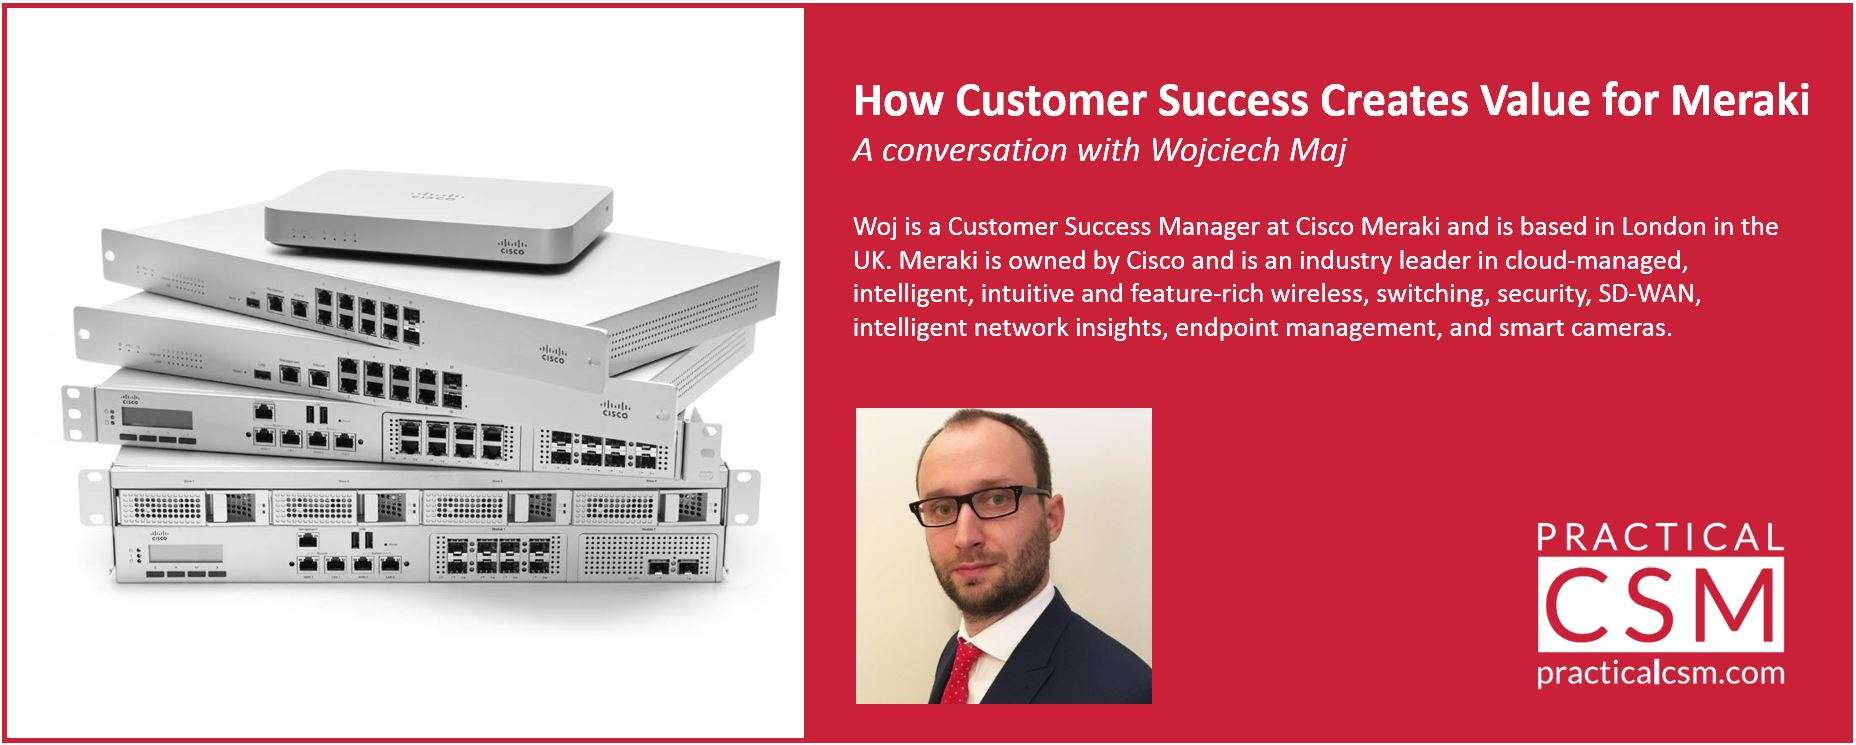 How Customer Success Creates Value for Meraki